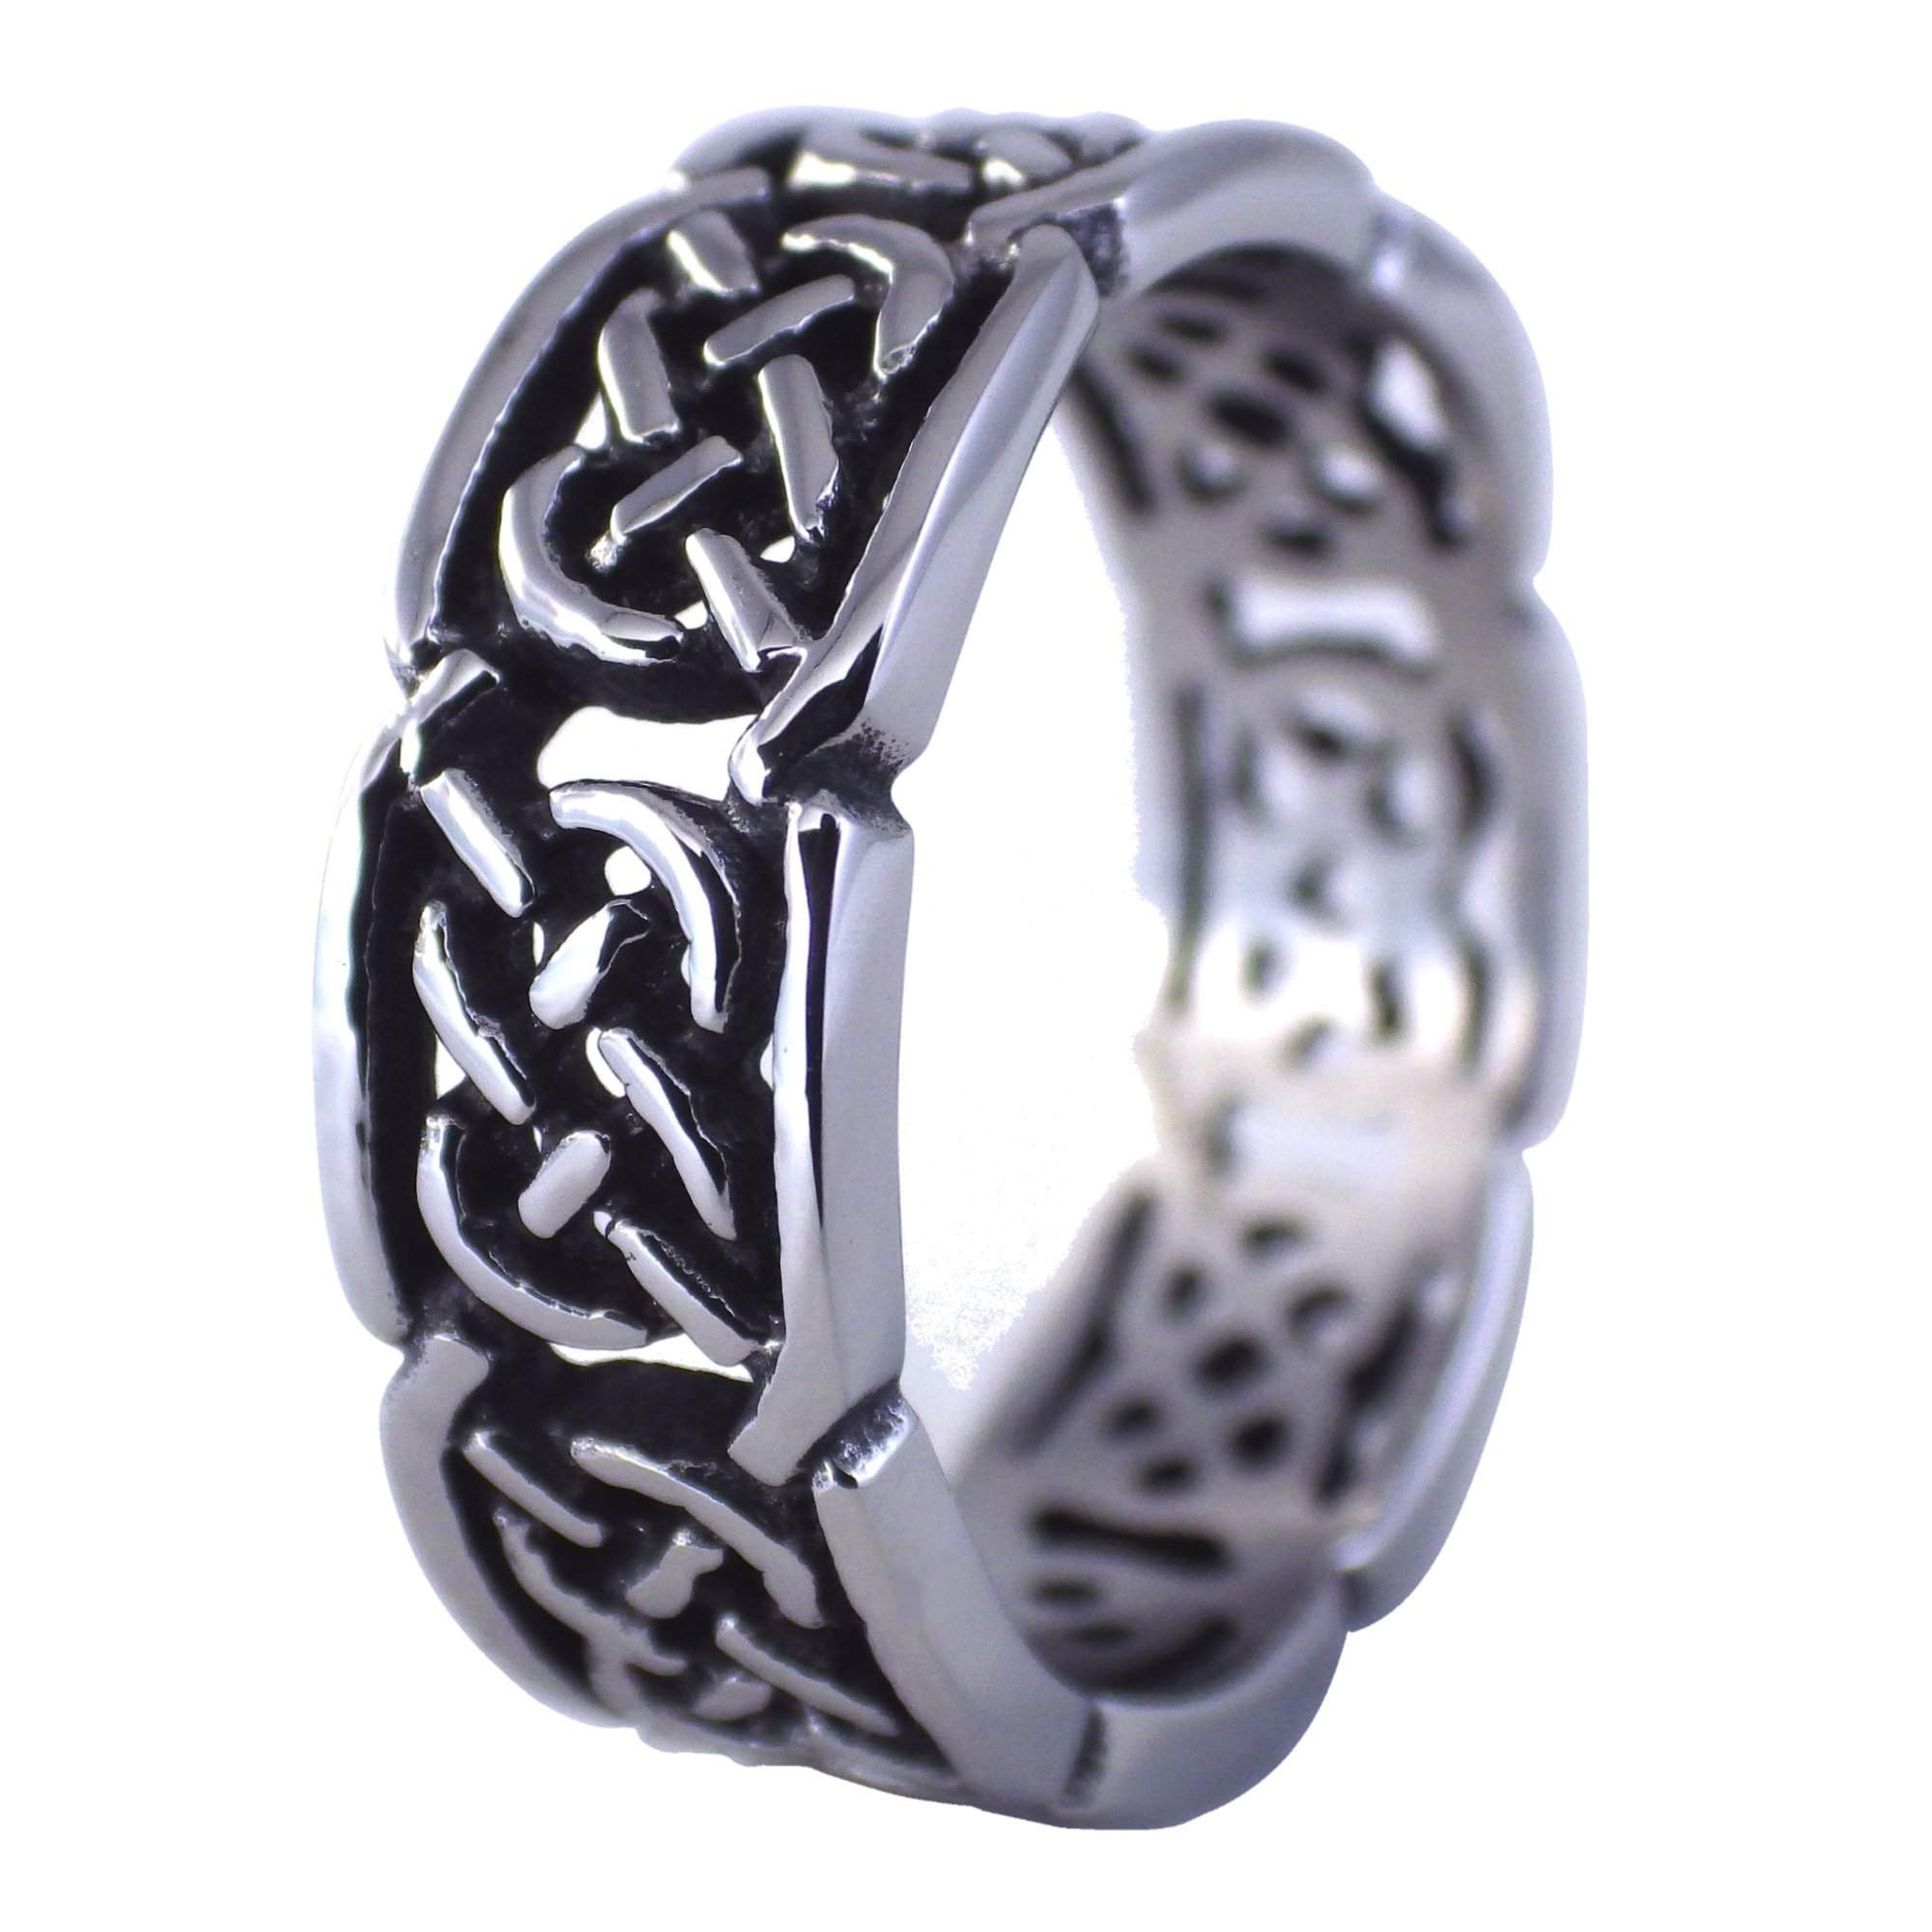 Fantasy Forge Jewelry Celtic Knot Wedding Bands Stainless Steel Ring Size 15